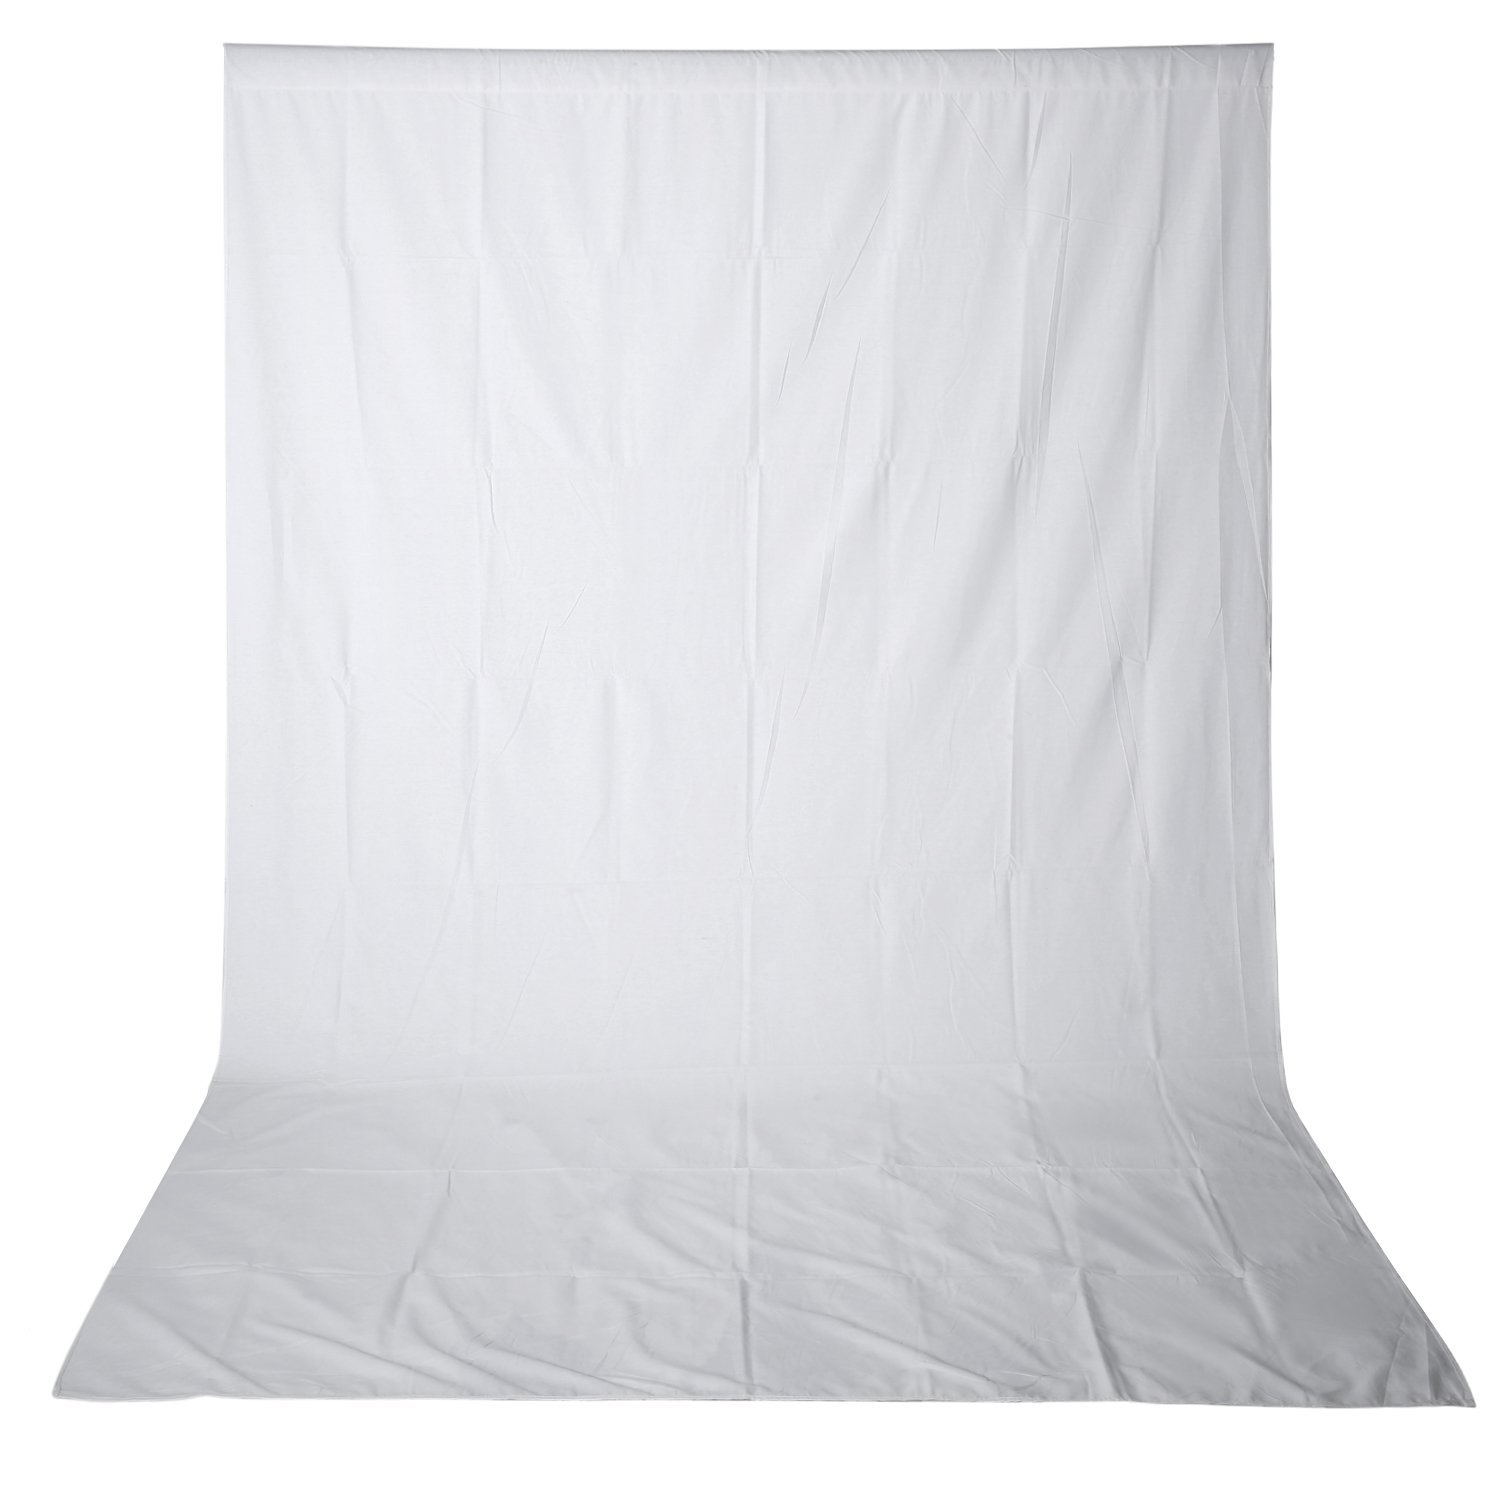 Neewer 10 x 20FT / 3 x 6M PRO Photo Studio 100% Pure Muslin Collapsible Backdrop Background for Photography,Video and Televison (Background ONLY) - WHITE by Neewer (Image #3)